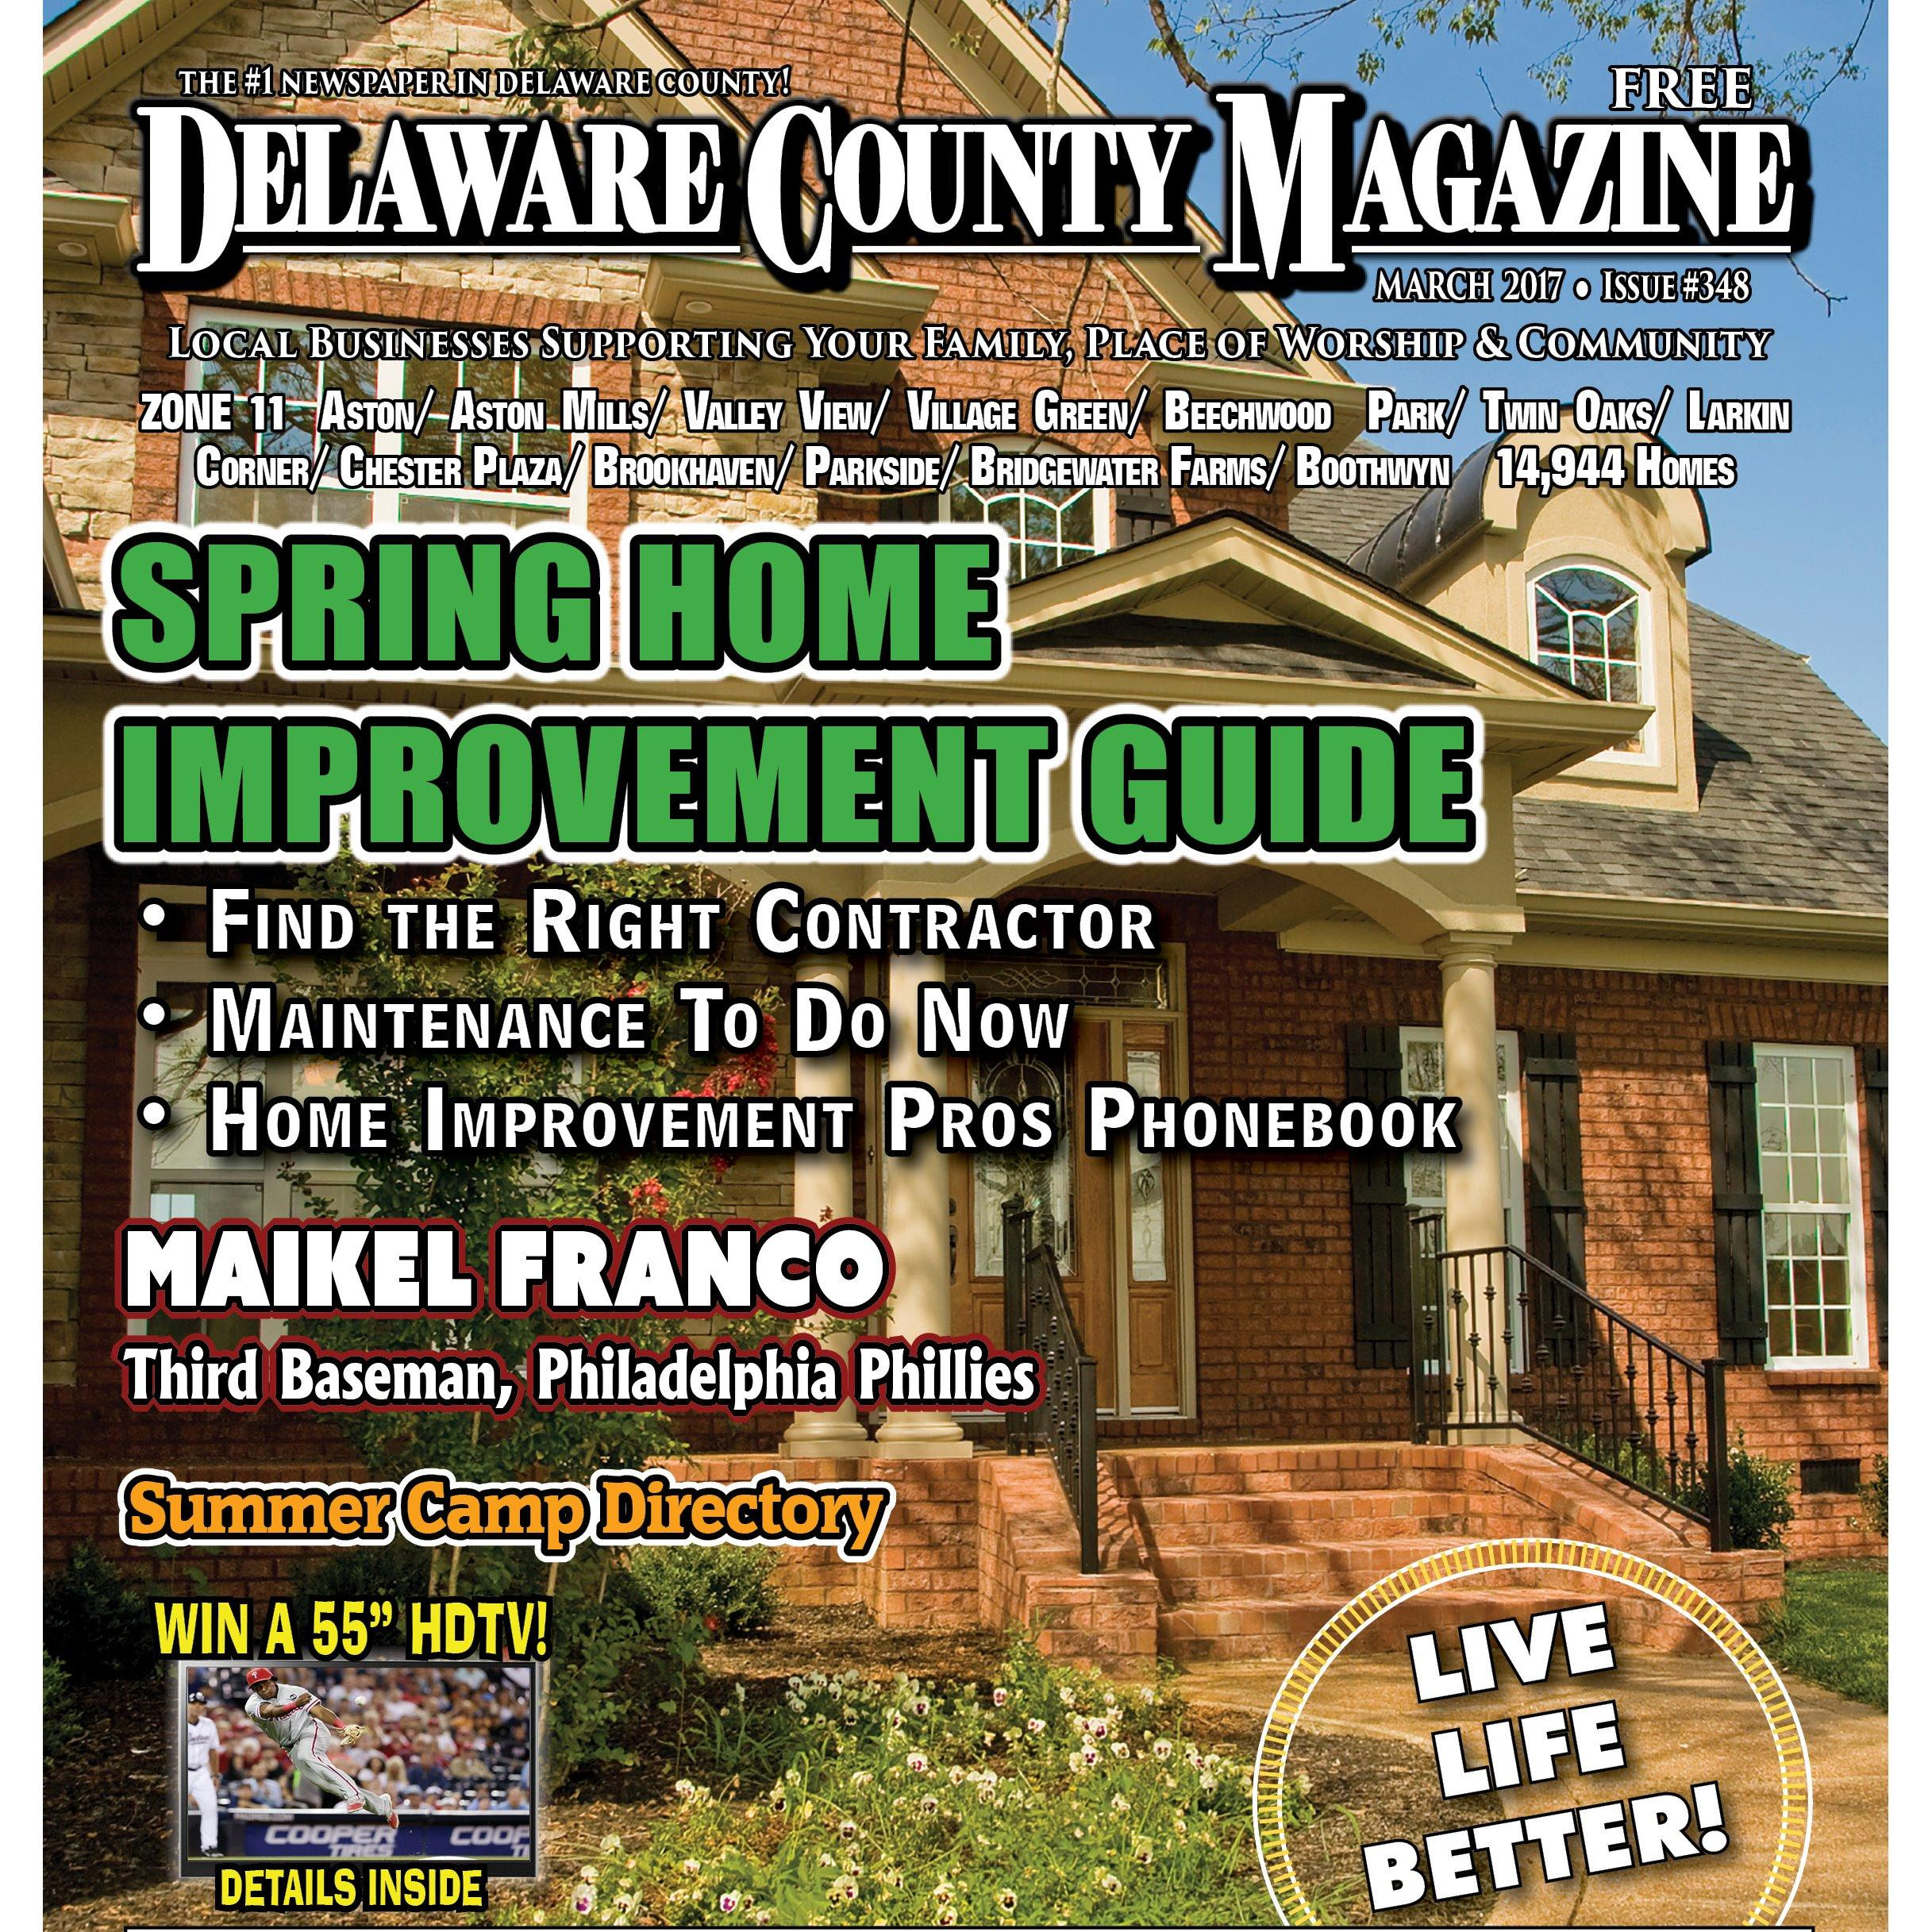 Delaware County Magazine - The Main Line Chronicles